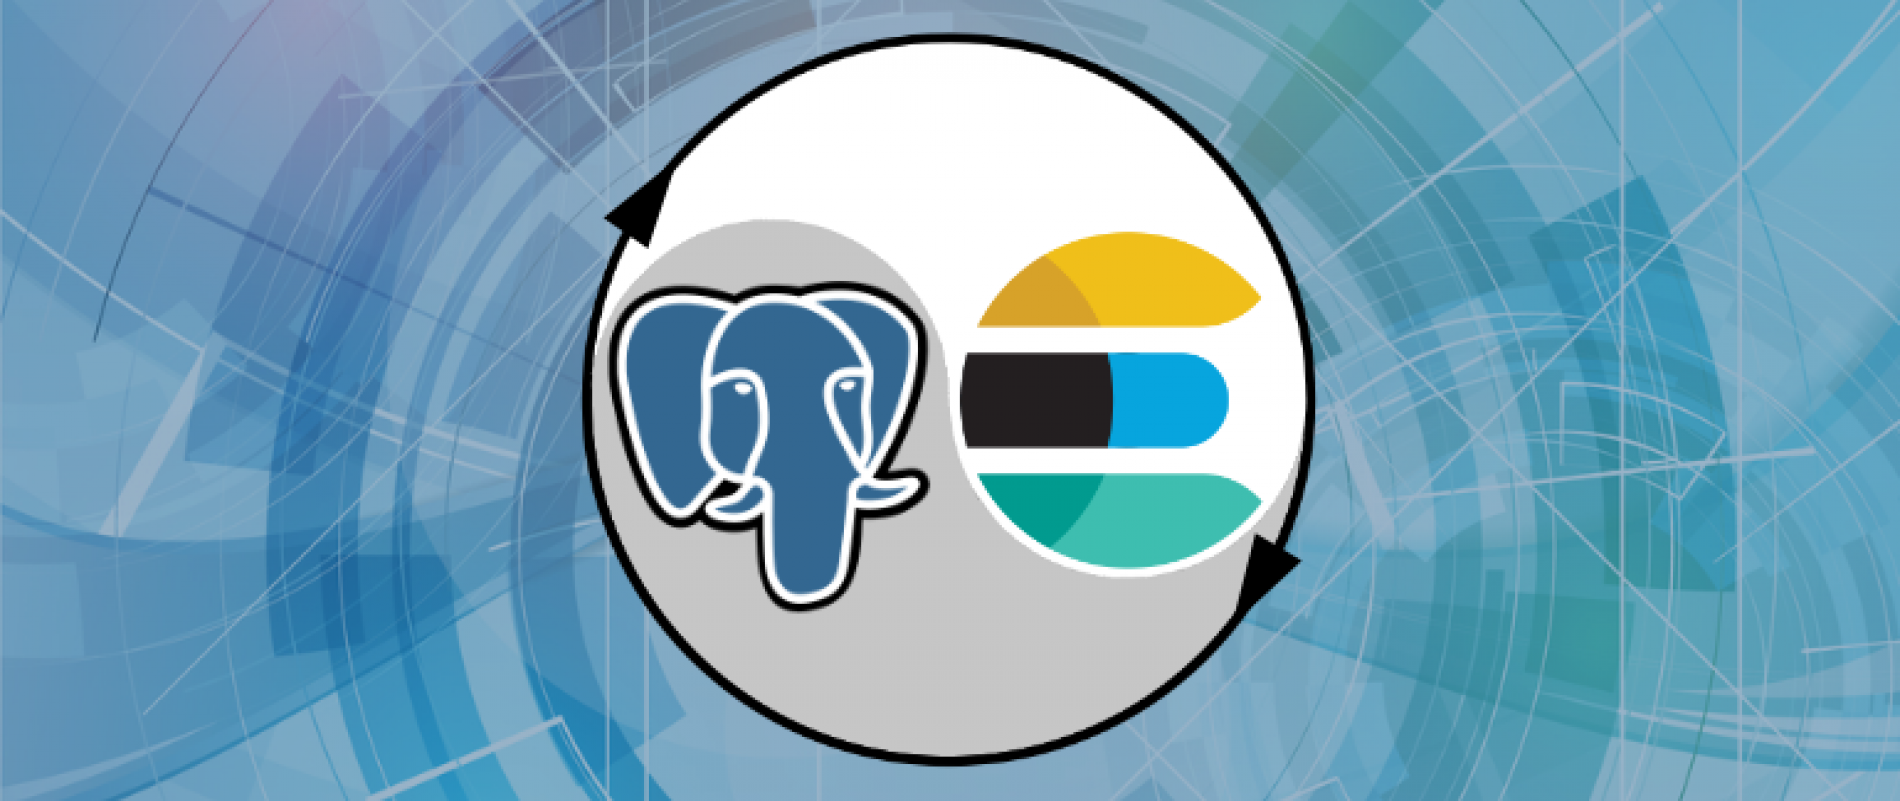 Sincronizando dados do PostgreSQL no Elasticsearch